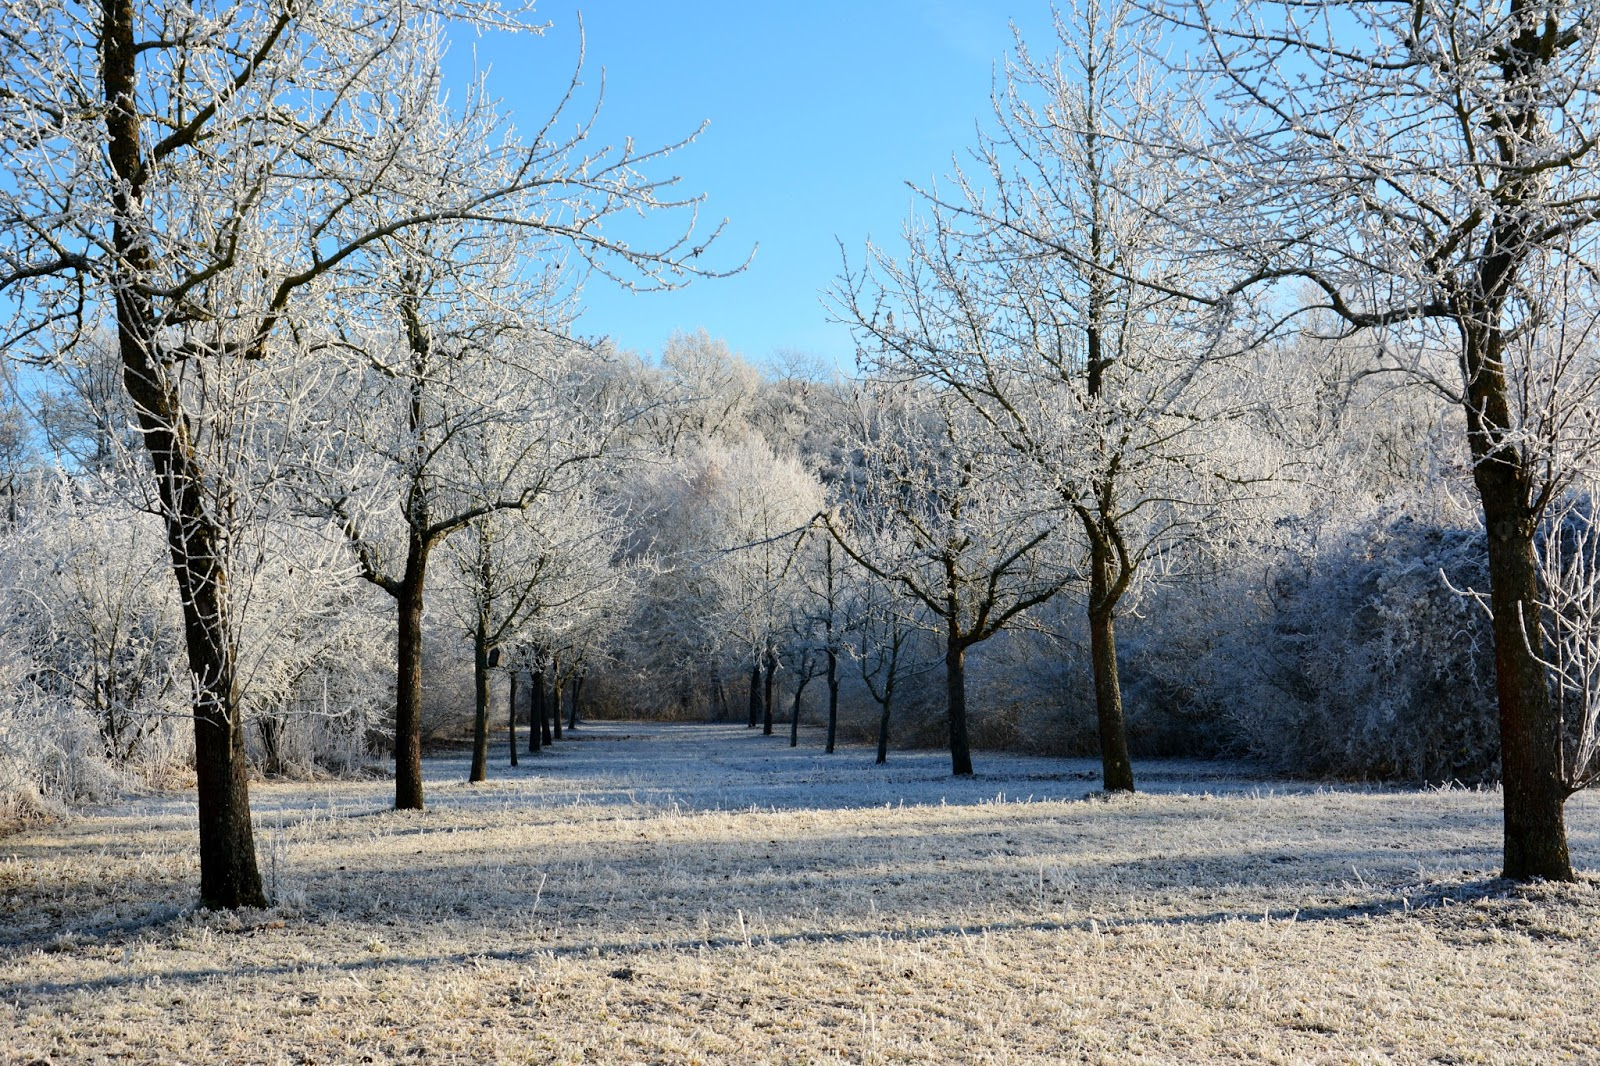 Trees covered in white frost